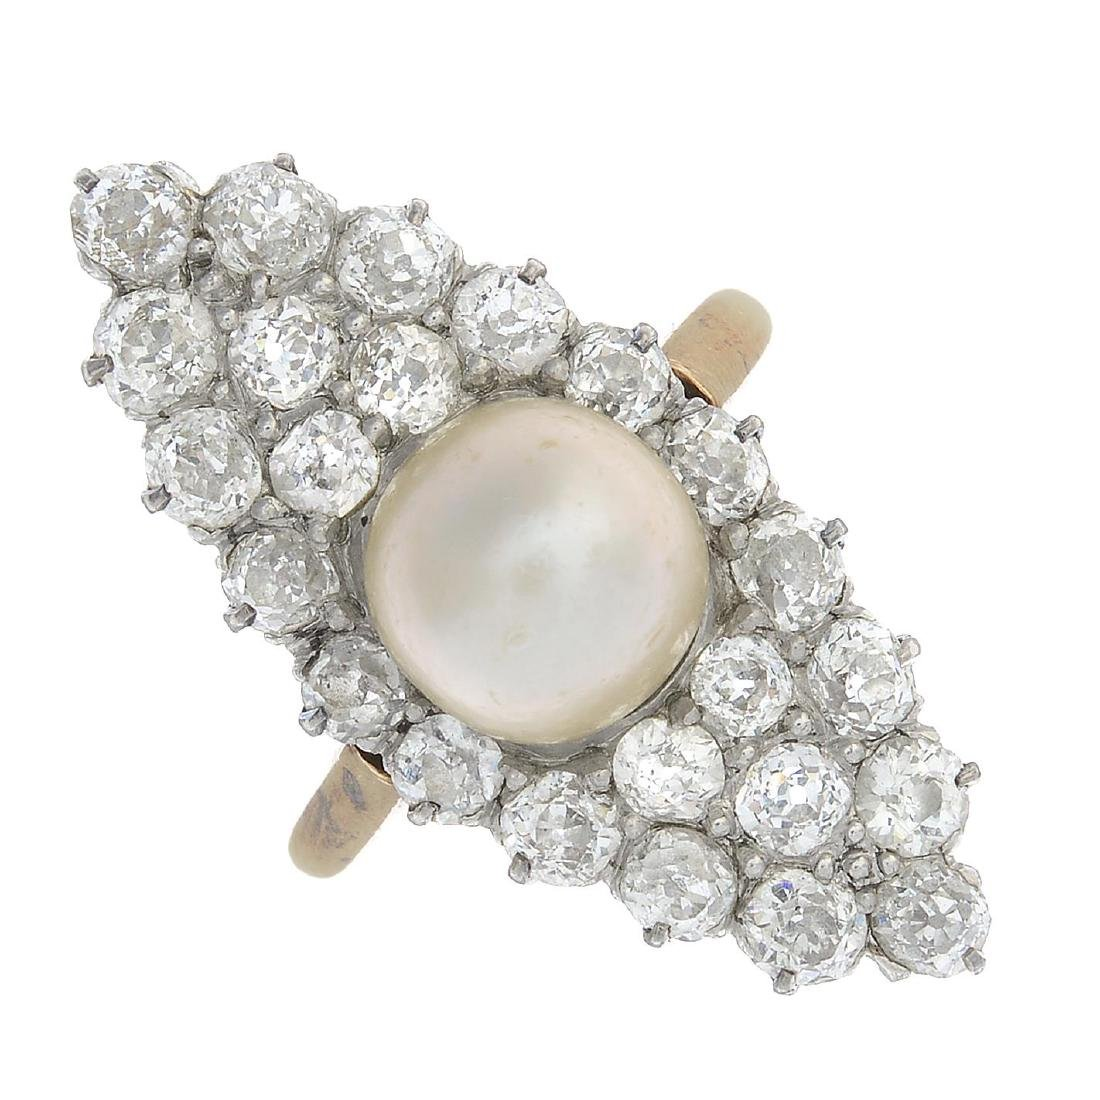 An early 20th century 18ct gold natural pearl and